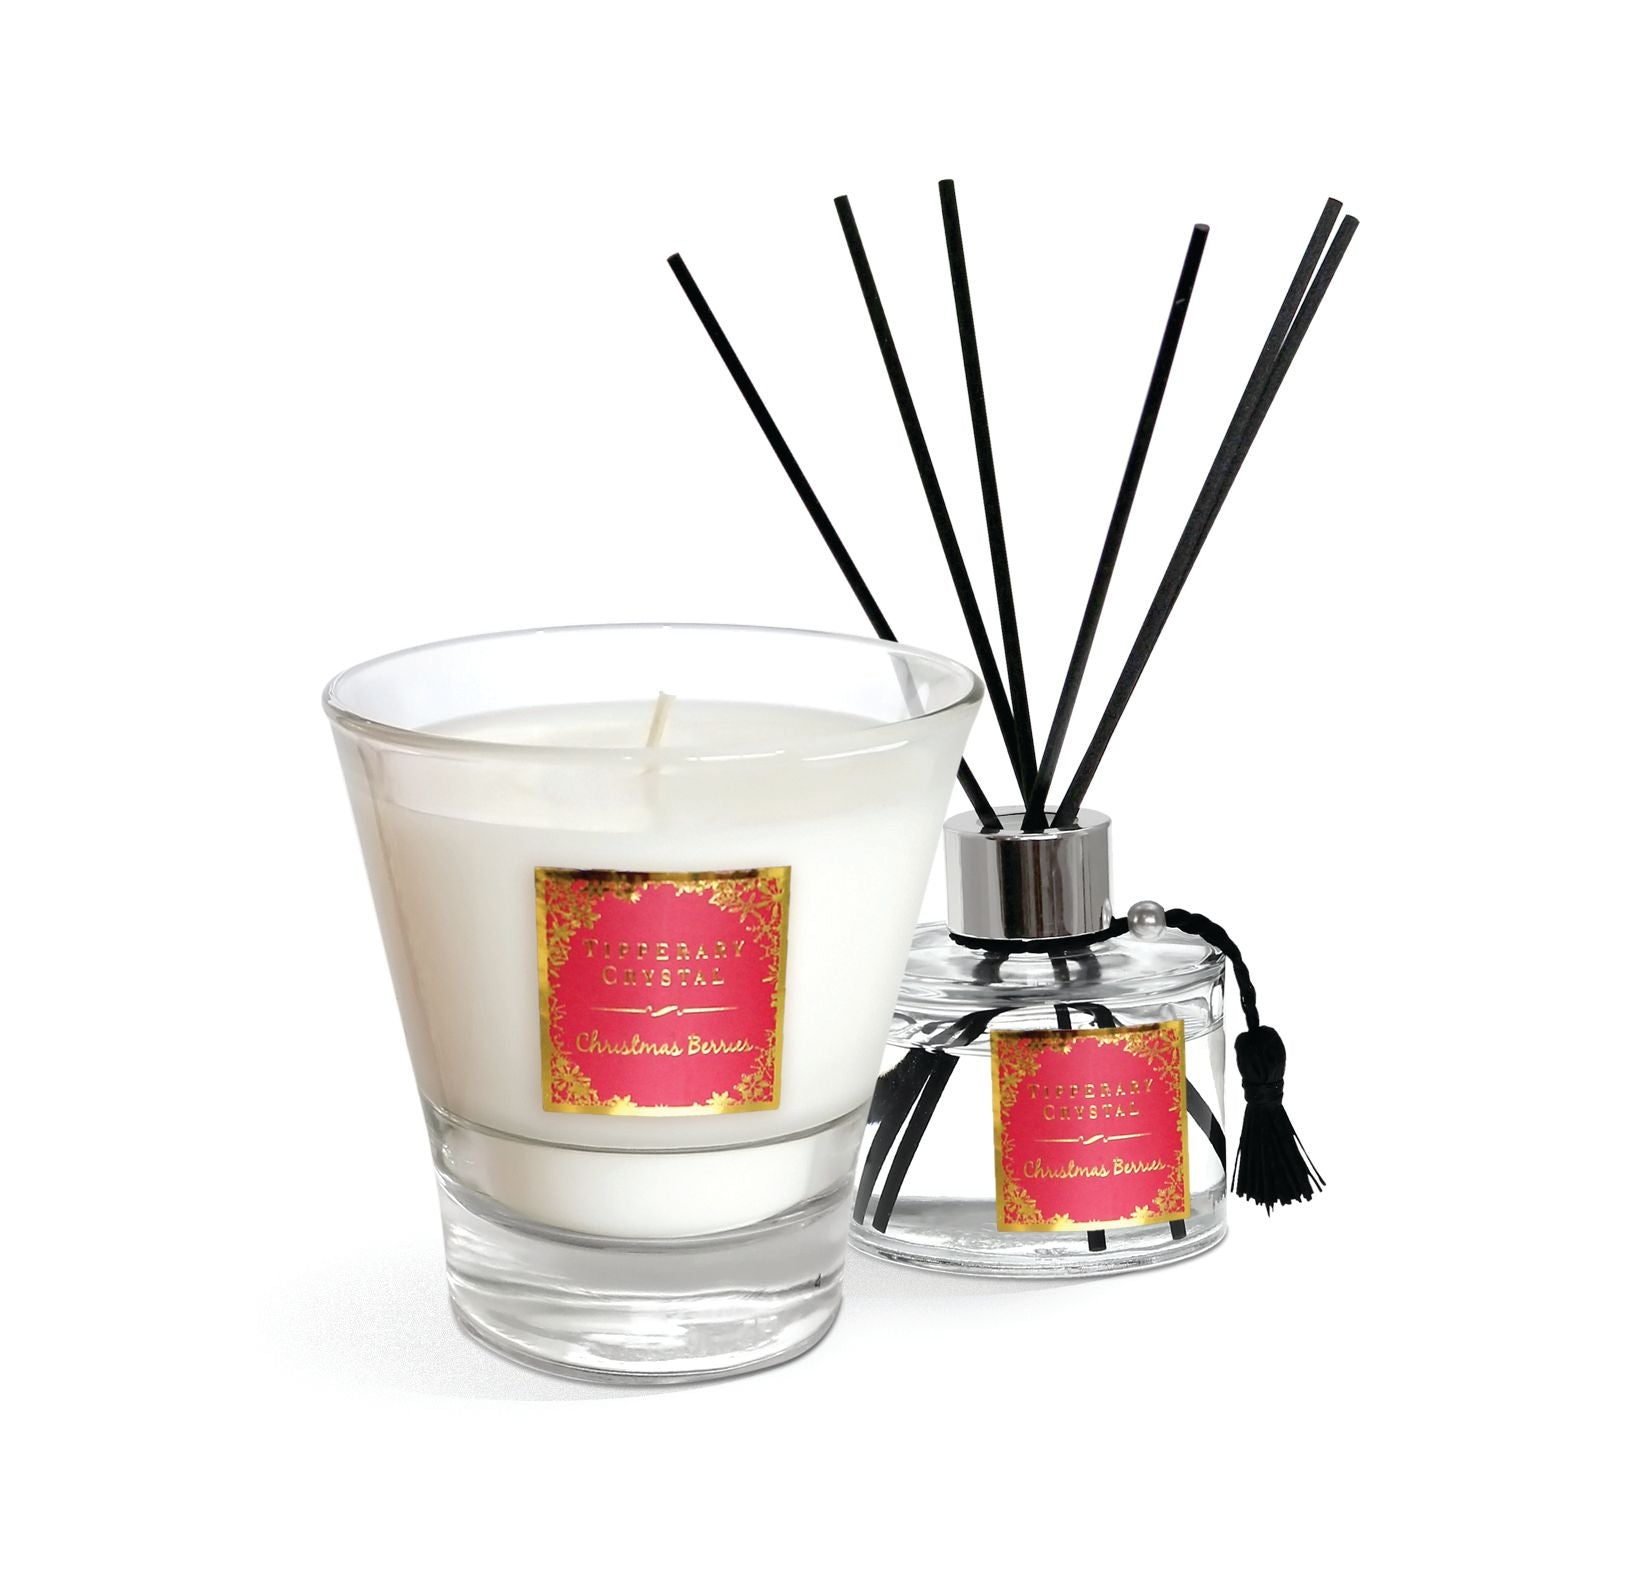 Tipperary Crystal Candle and Diffuser Set Christmas Berries